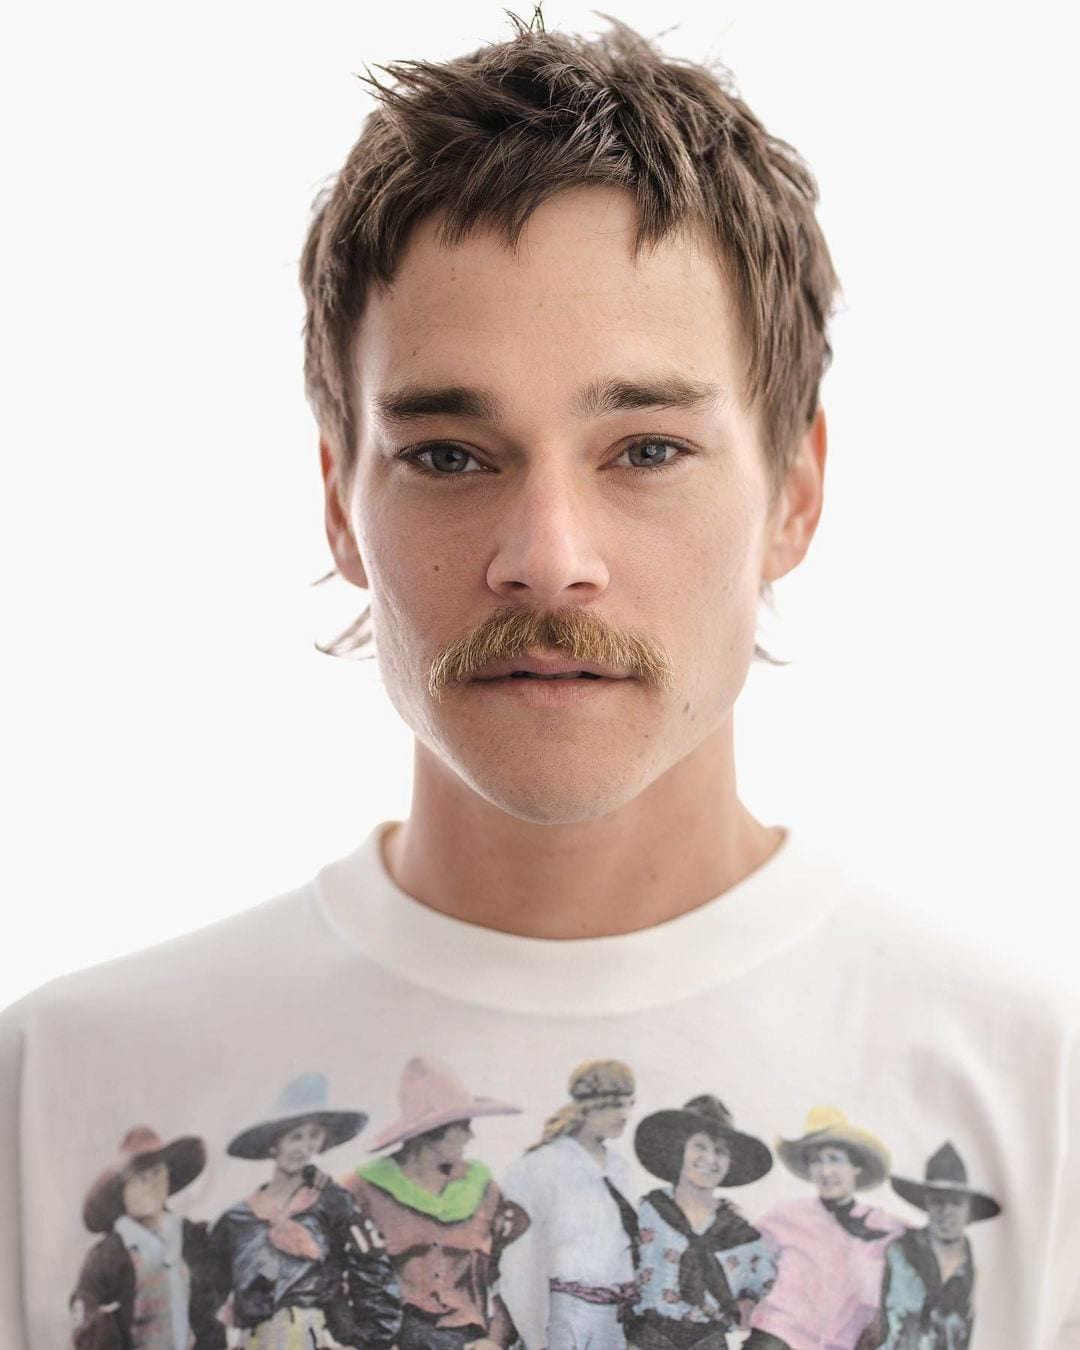 Guy with a dirty stache wears a shirt with cowboys on it and looks at the camera while rocking a mullet